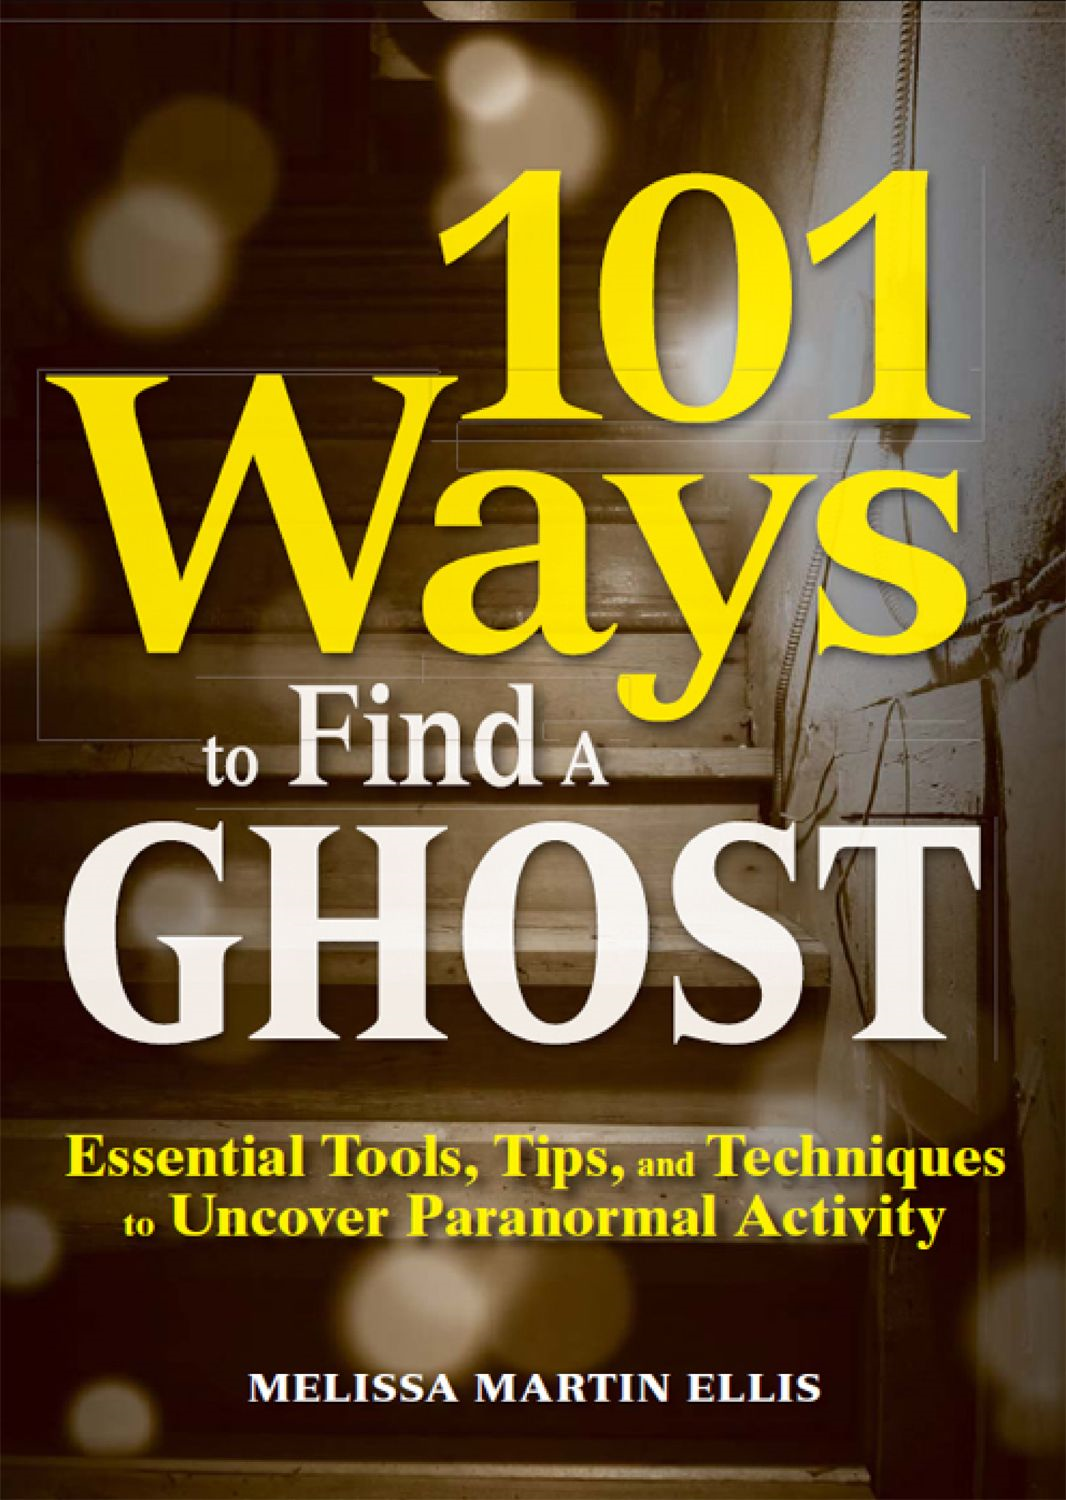 101 Ways to Find a Ghost: Essential Tools, Tips, and Techniques to Uncover Paranormal Activity